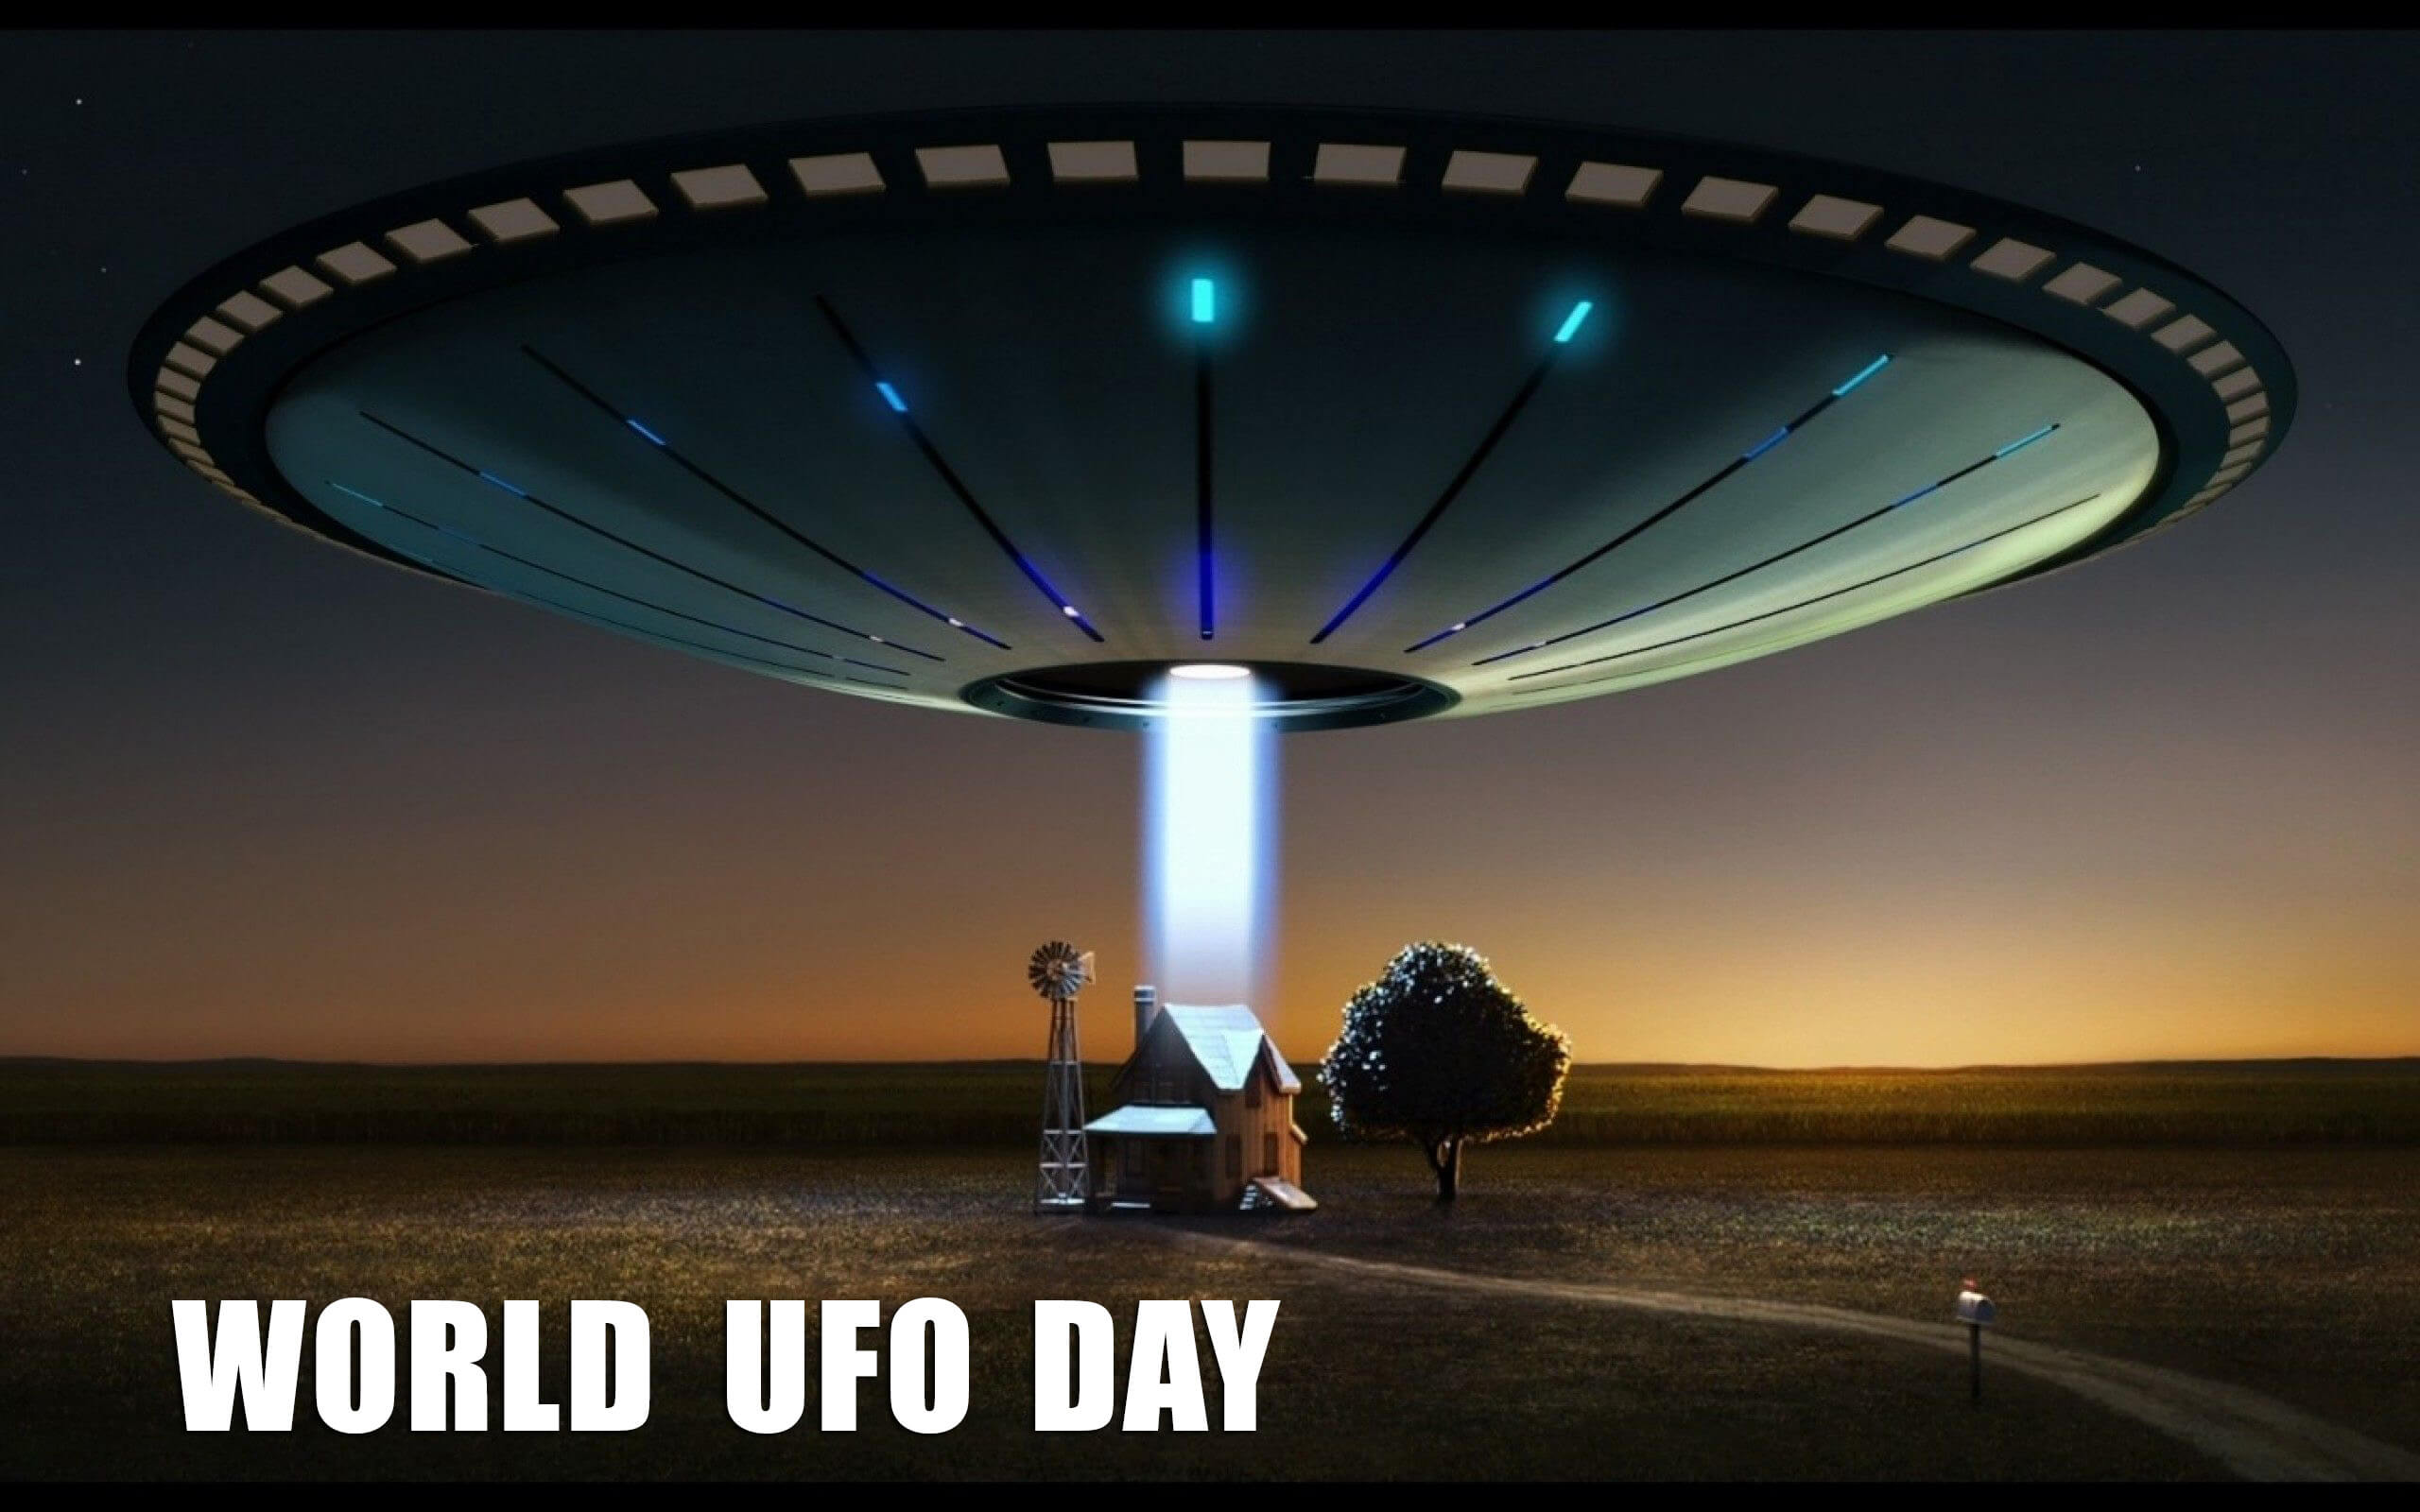 world ufo day unidentified flying object saucer storm hd wallpaper